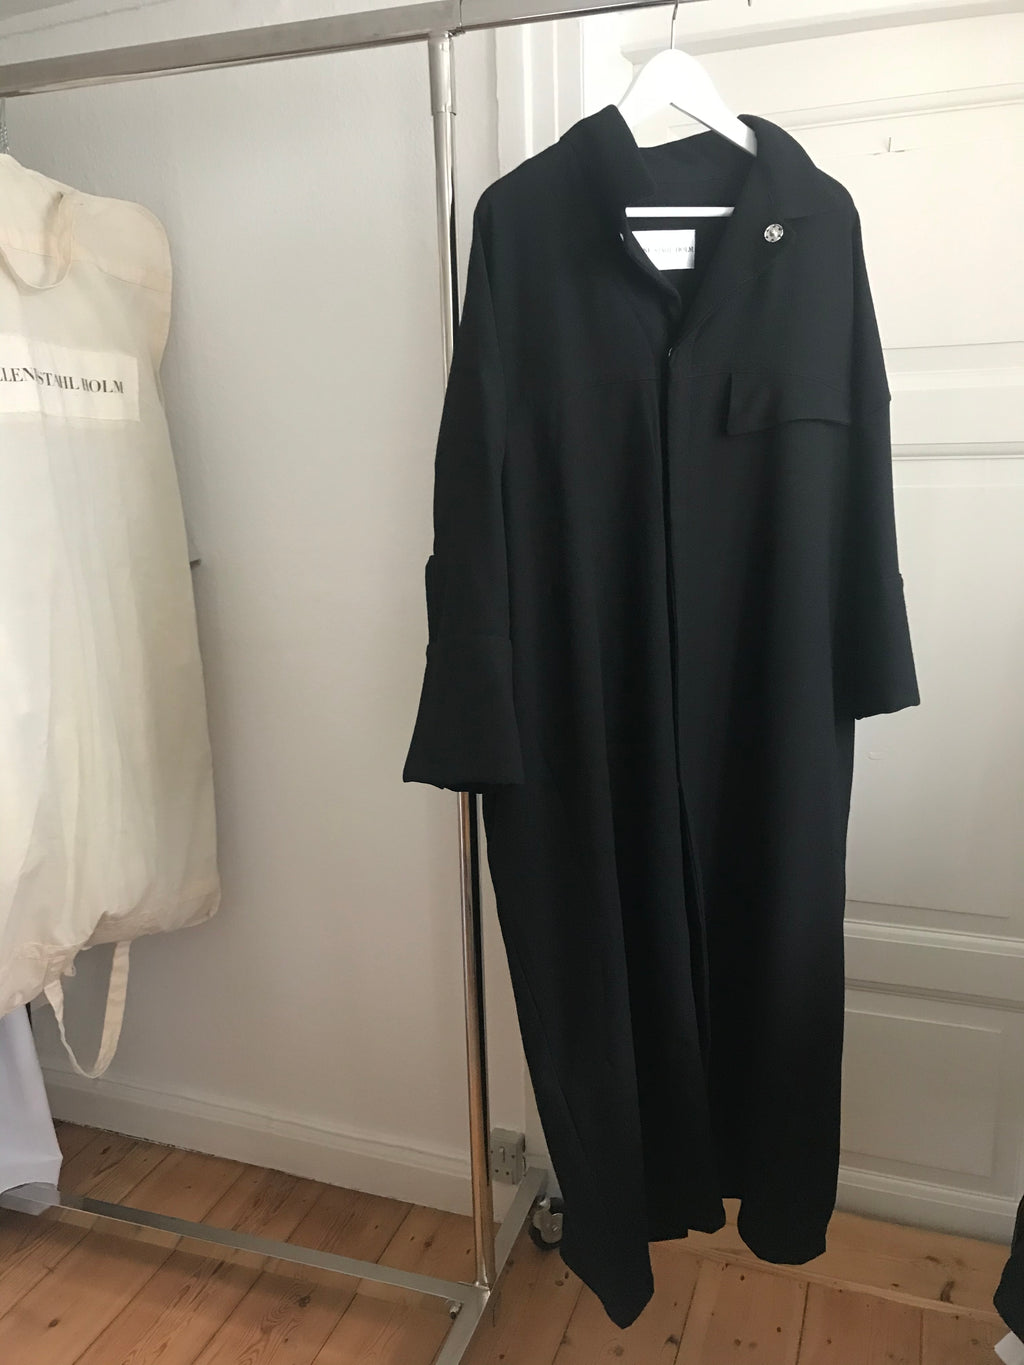 The Coat - Black wool